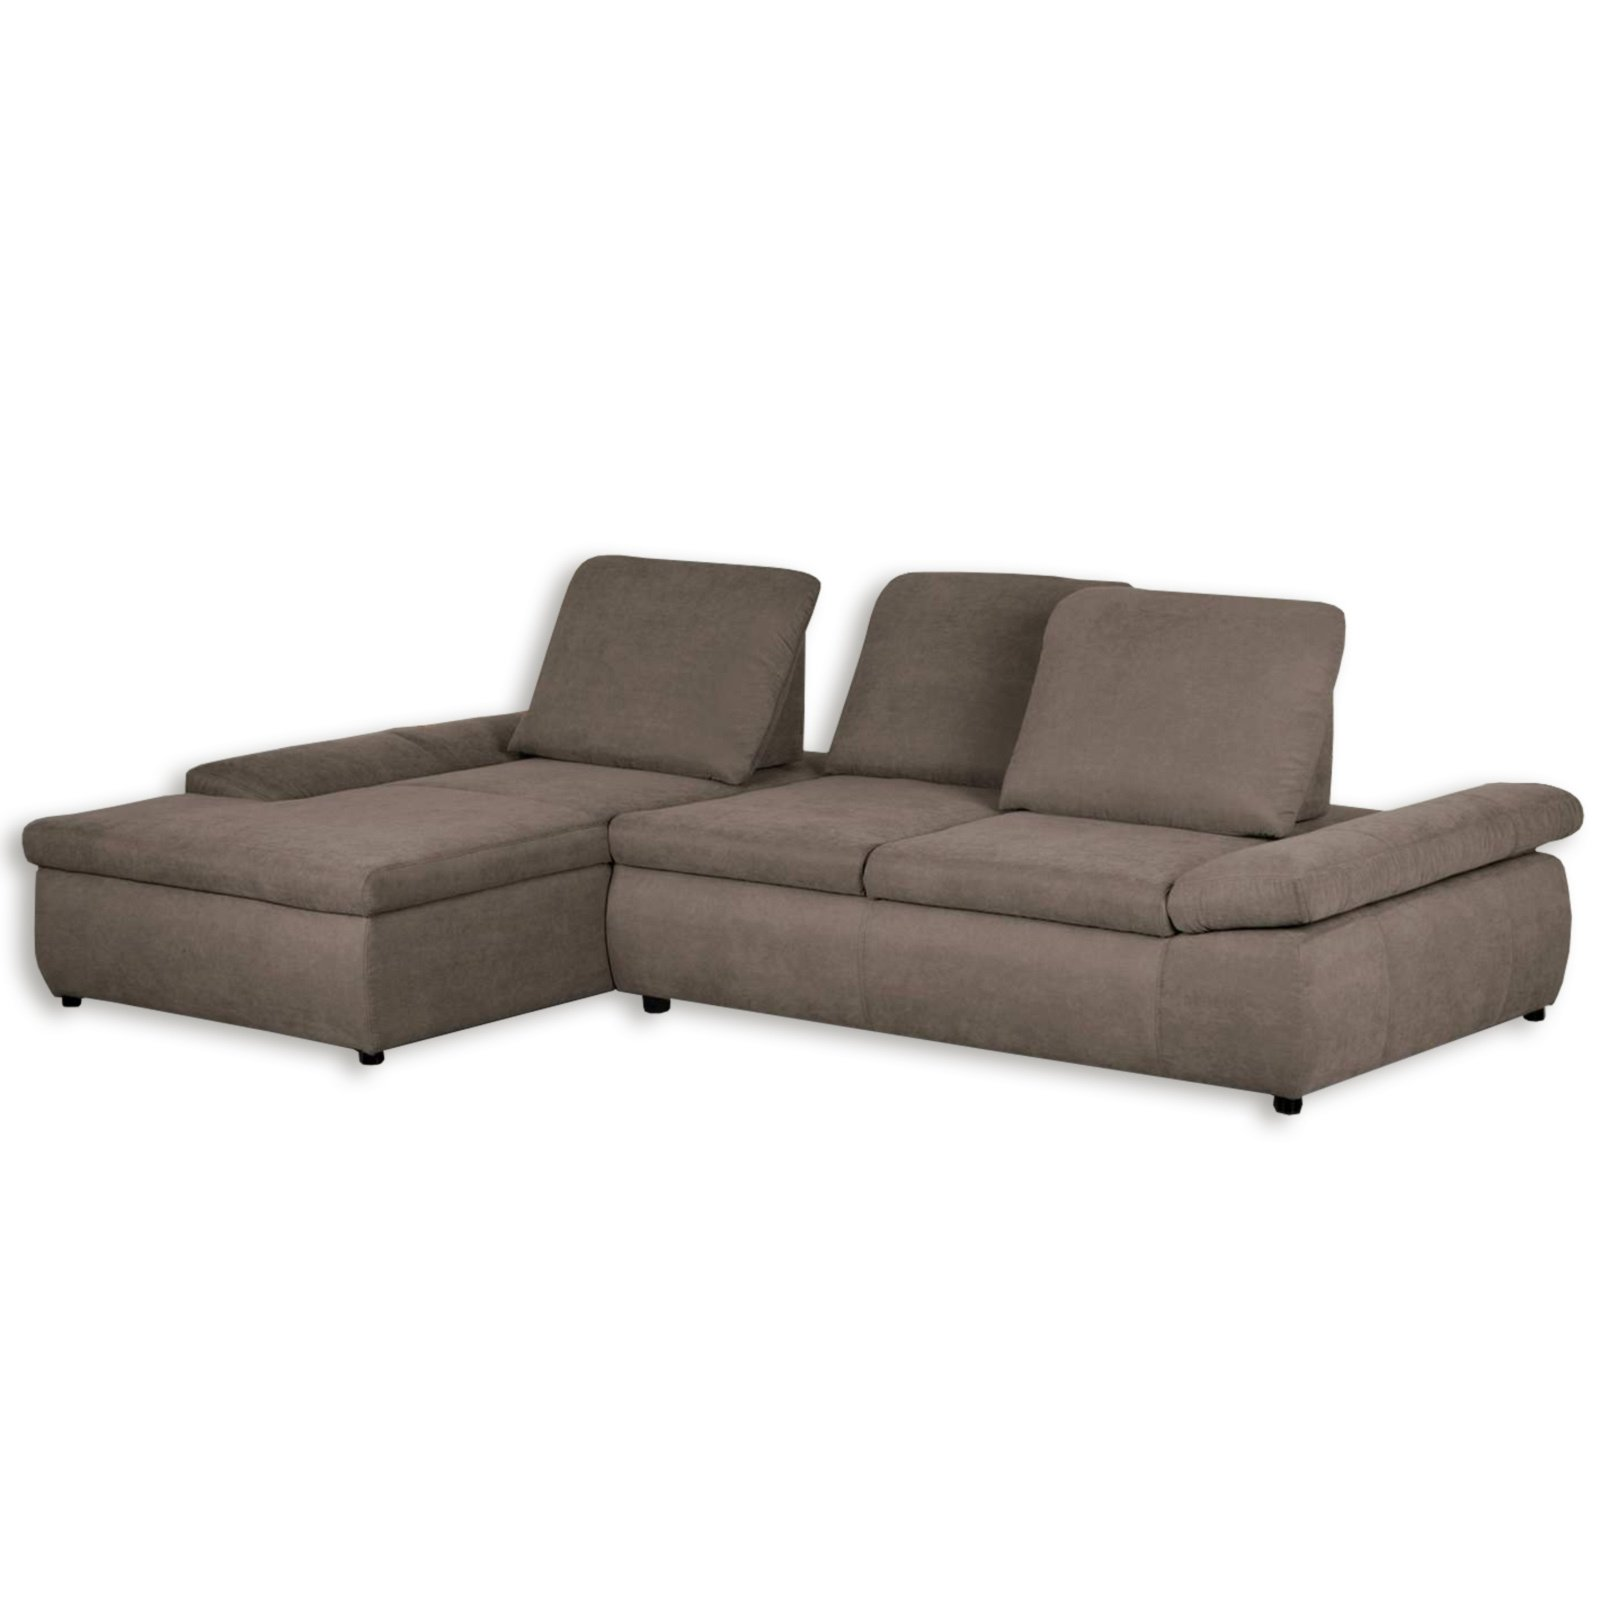 Ecksofa taupe mit funktionen recamiere links for Ecksofa 3 00 m